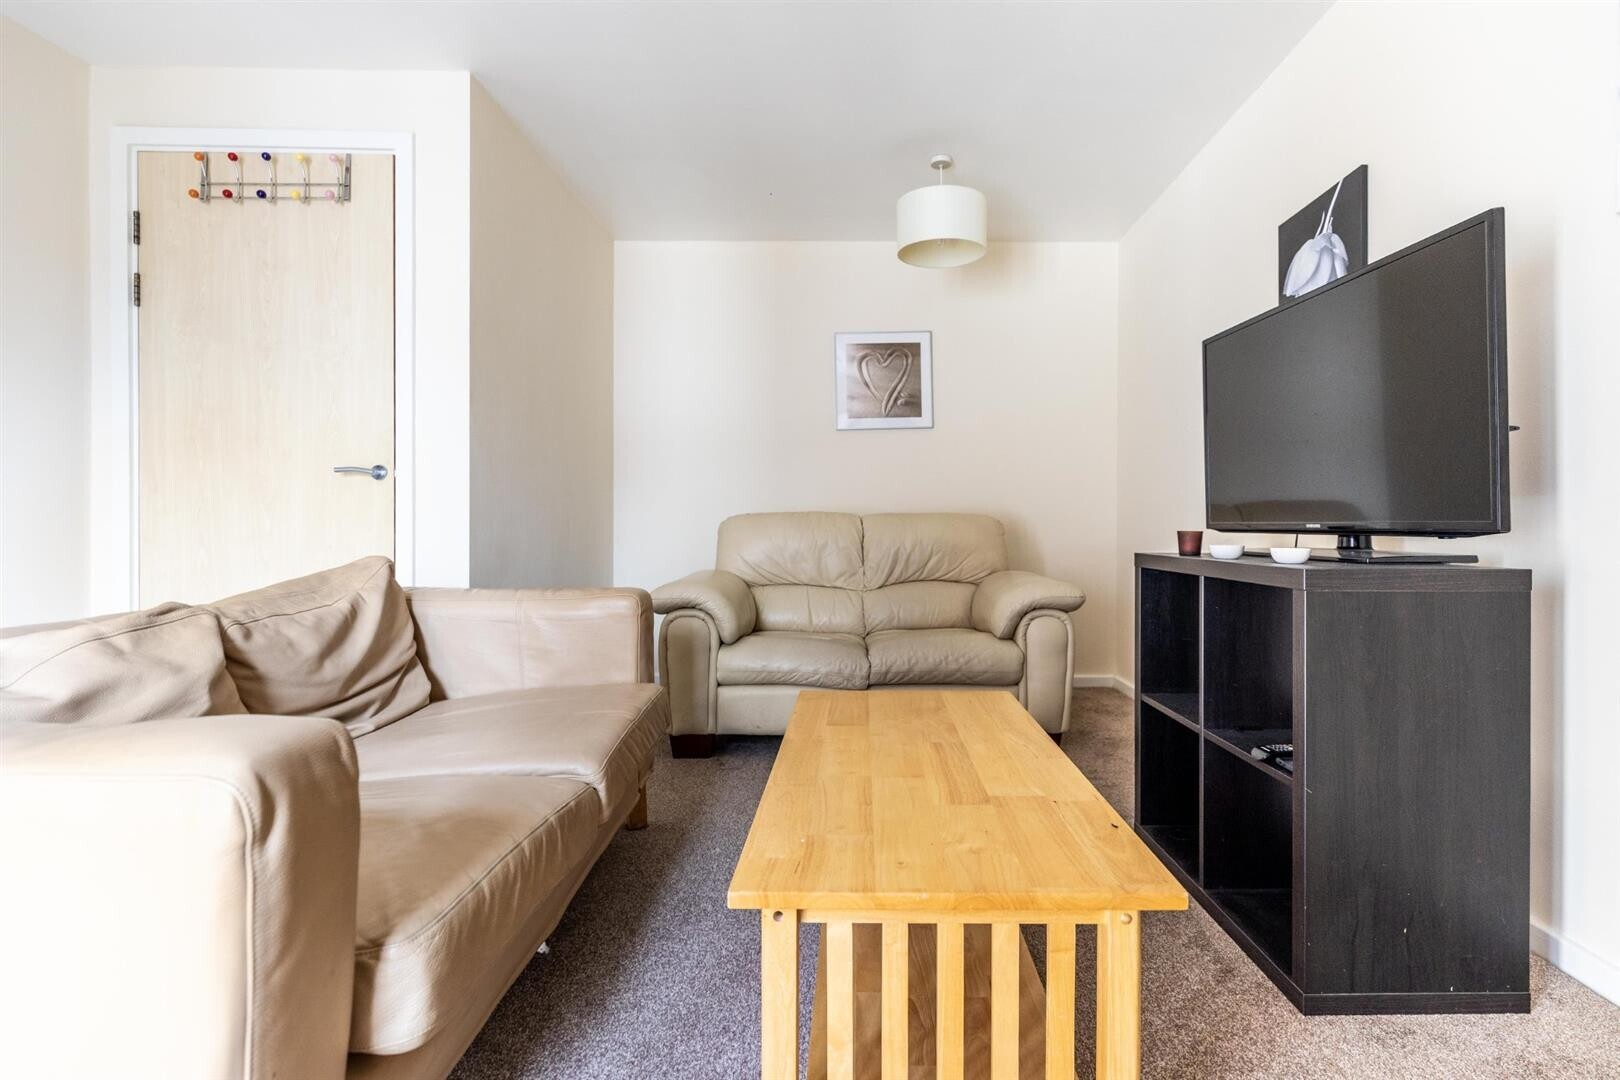 3 bedroom student house in City Centre, Newcastle